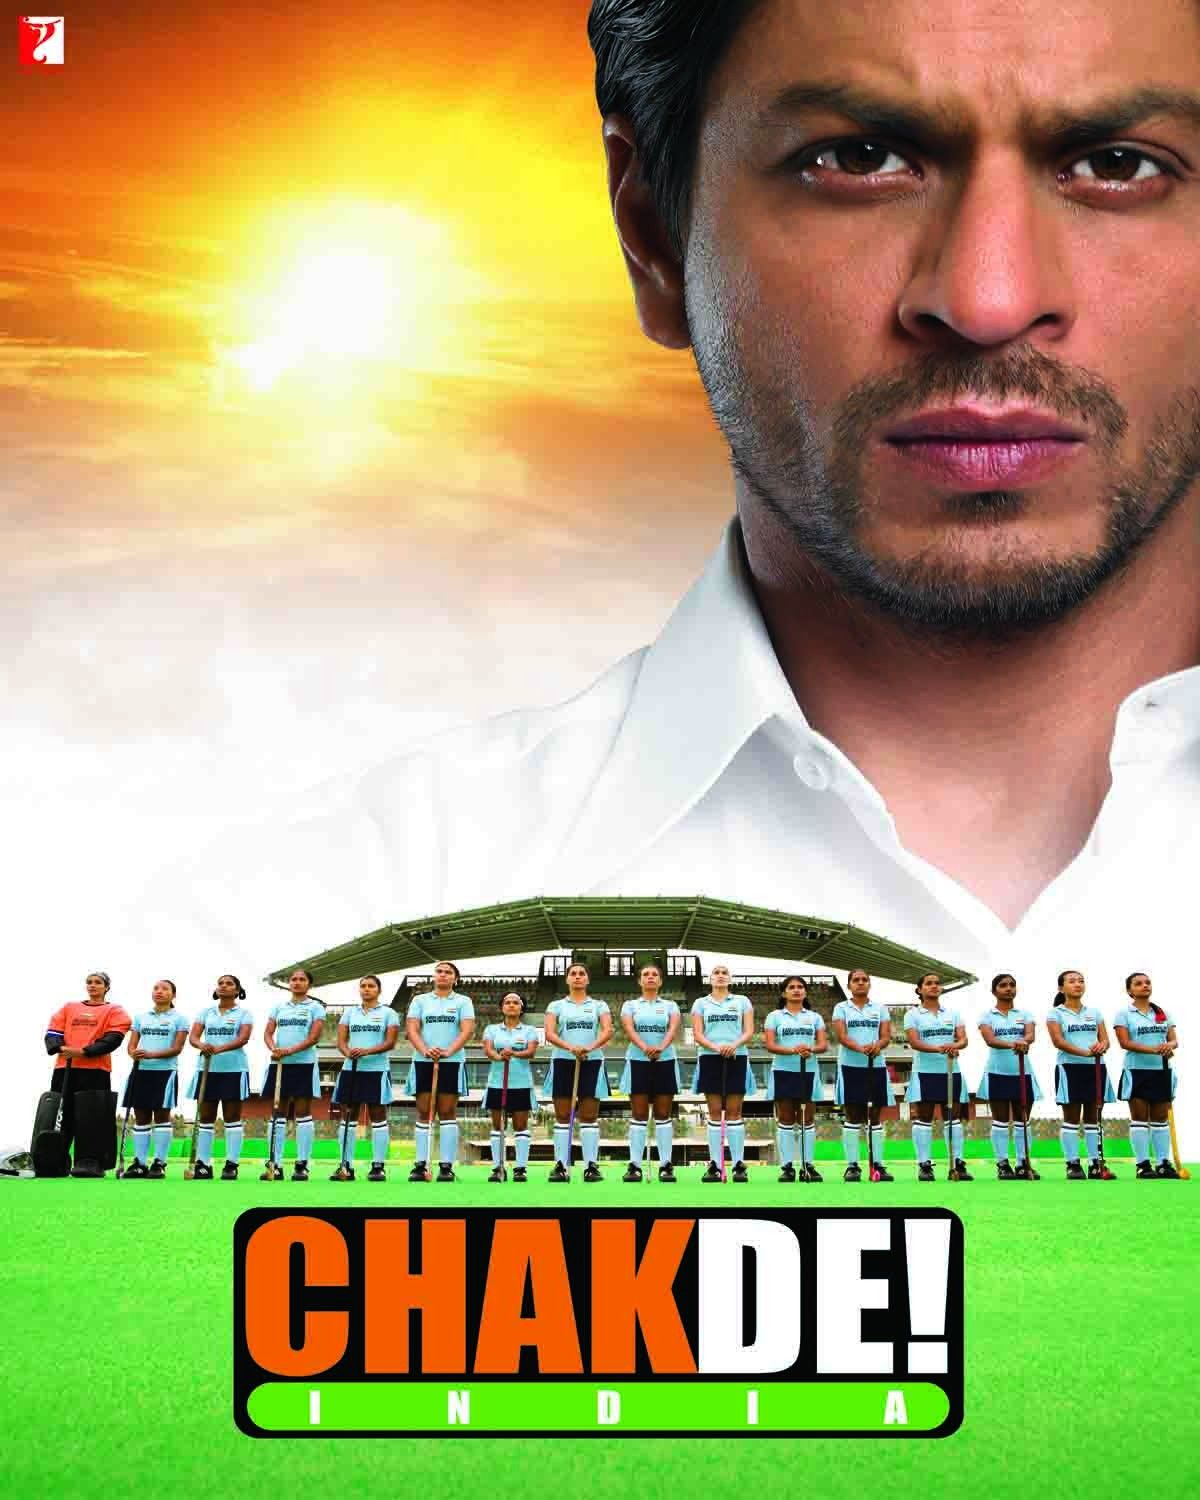 Orginal Poster from the movie, Chak De India (2007) Chak